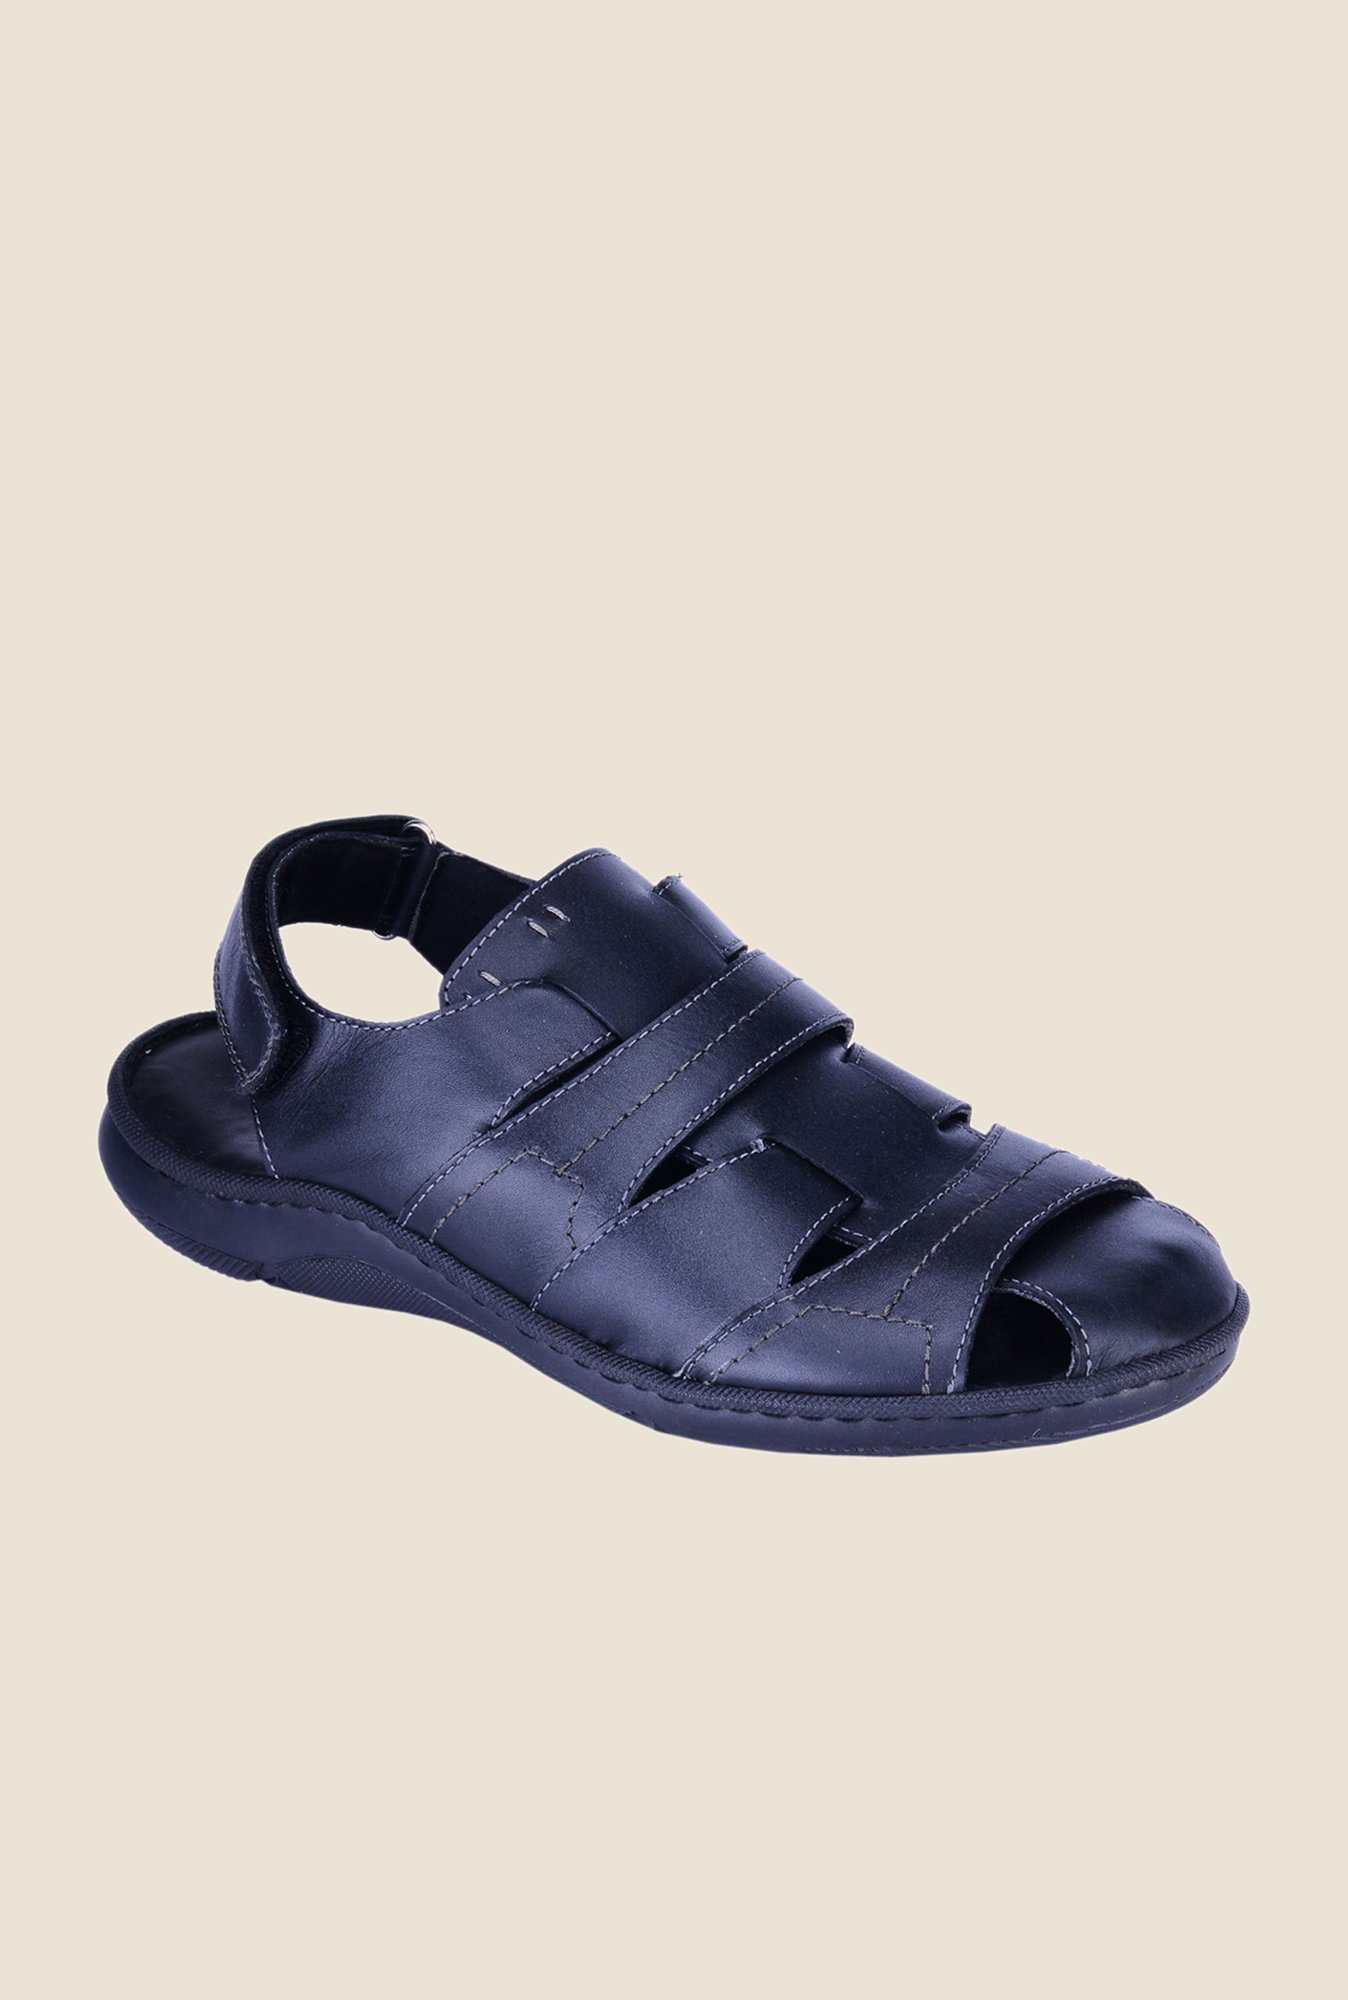 Khadim's British Walkers Black Fisherman Sandals